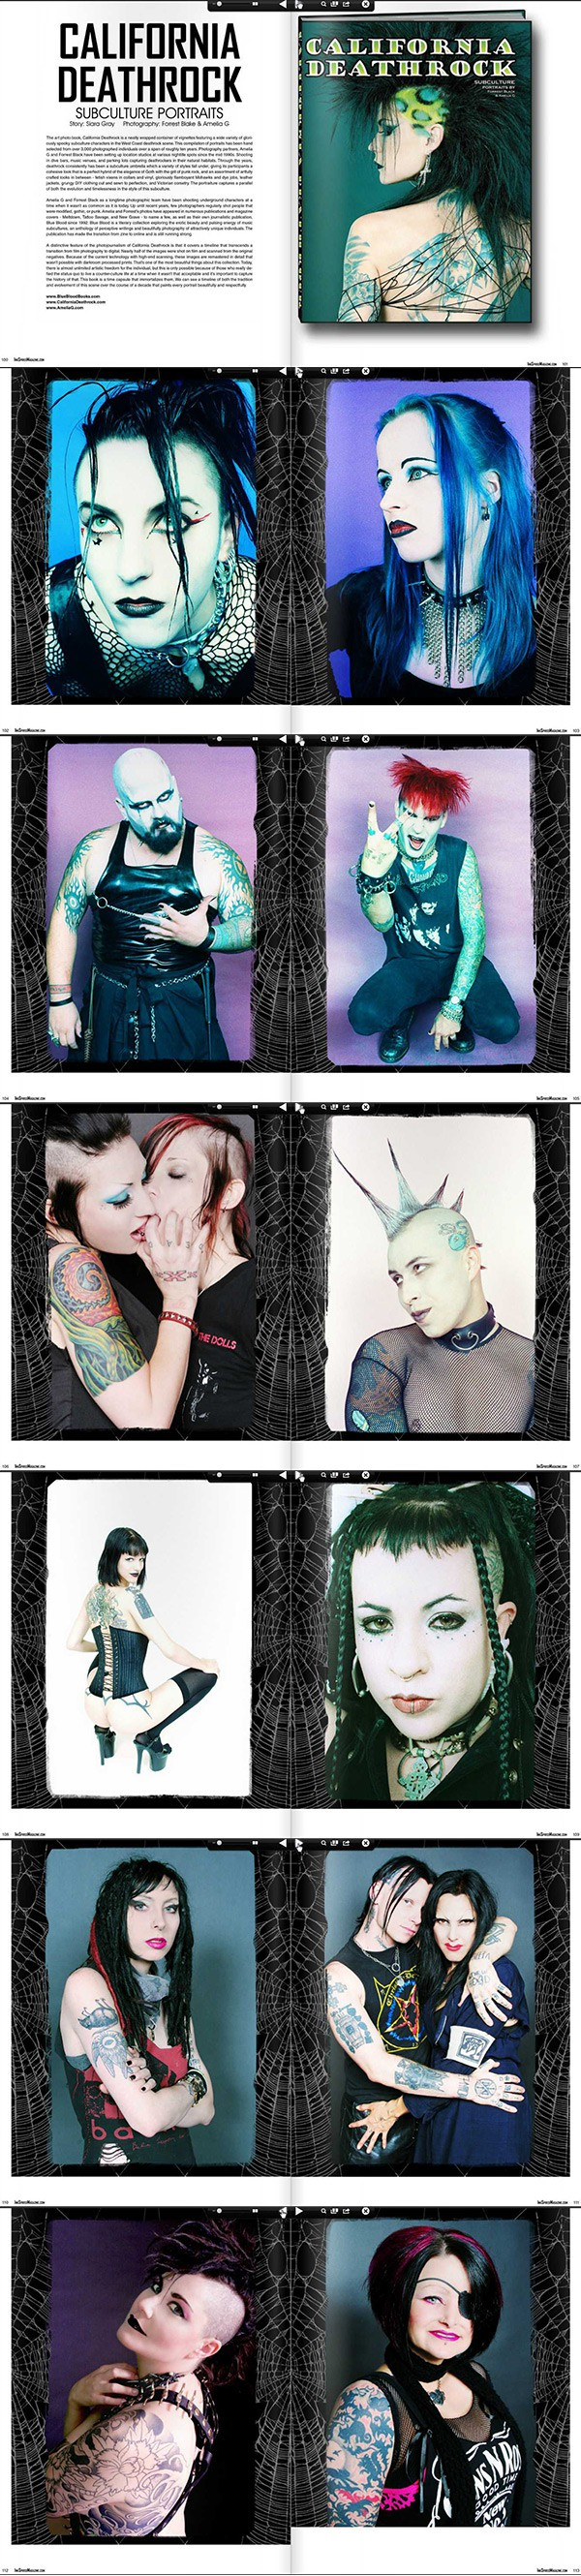 inkspired 27 california deathrock siara gray interview